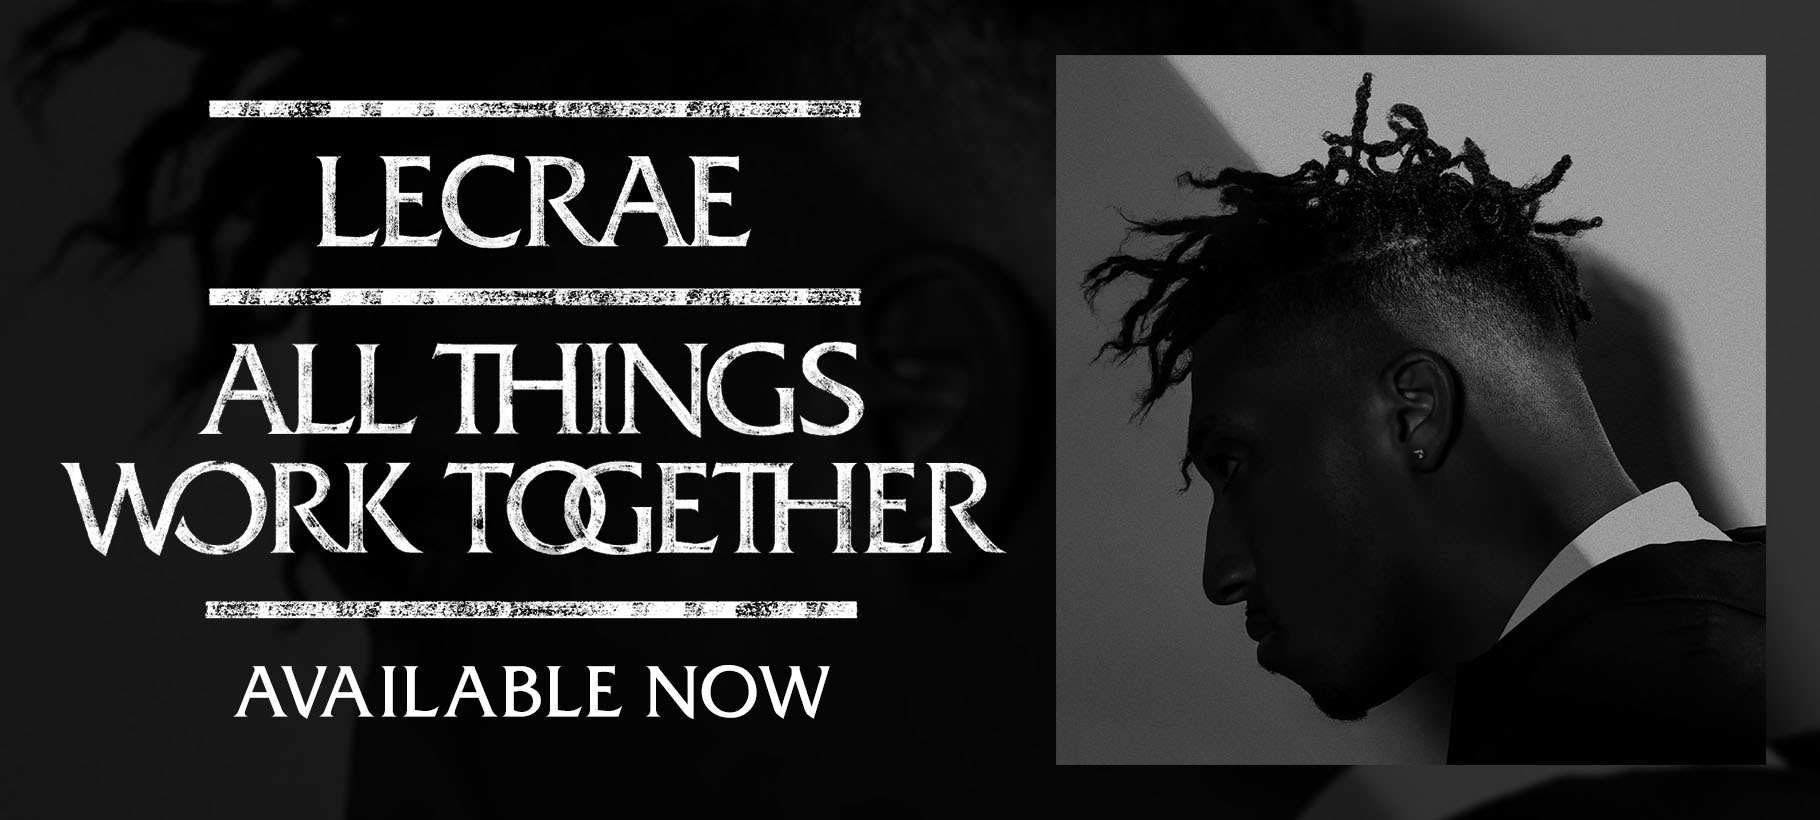 Lecrae x All Things Work Together x Out Now